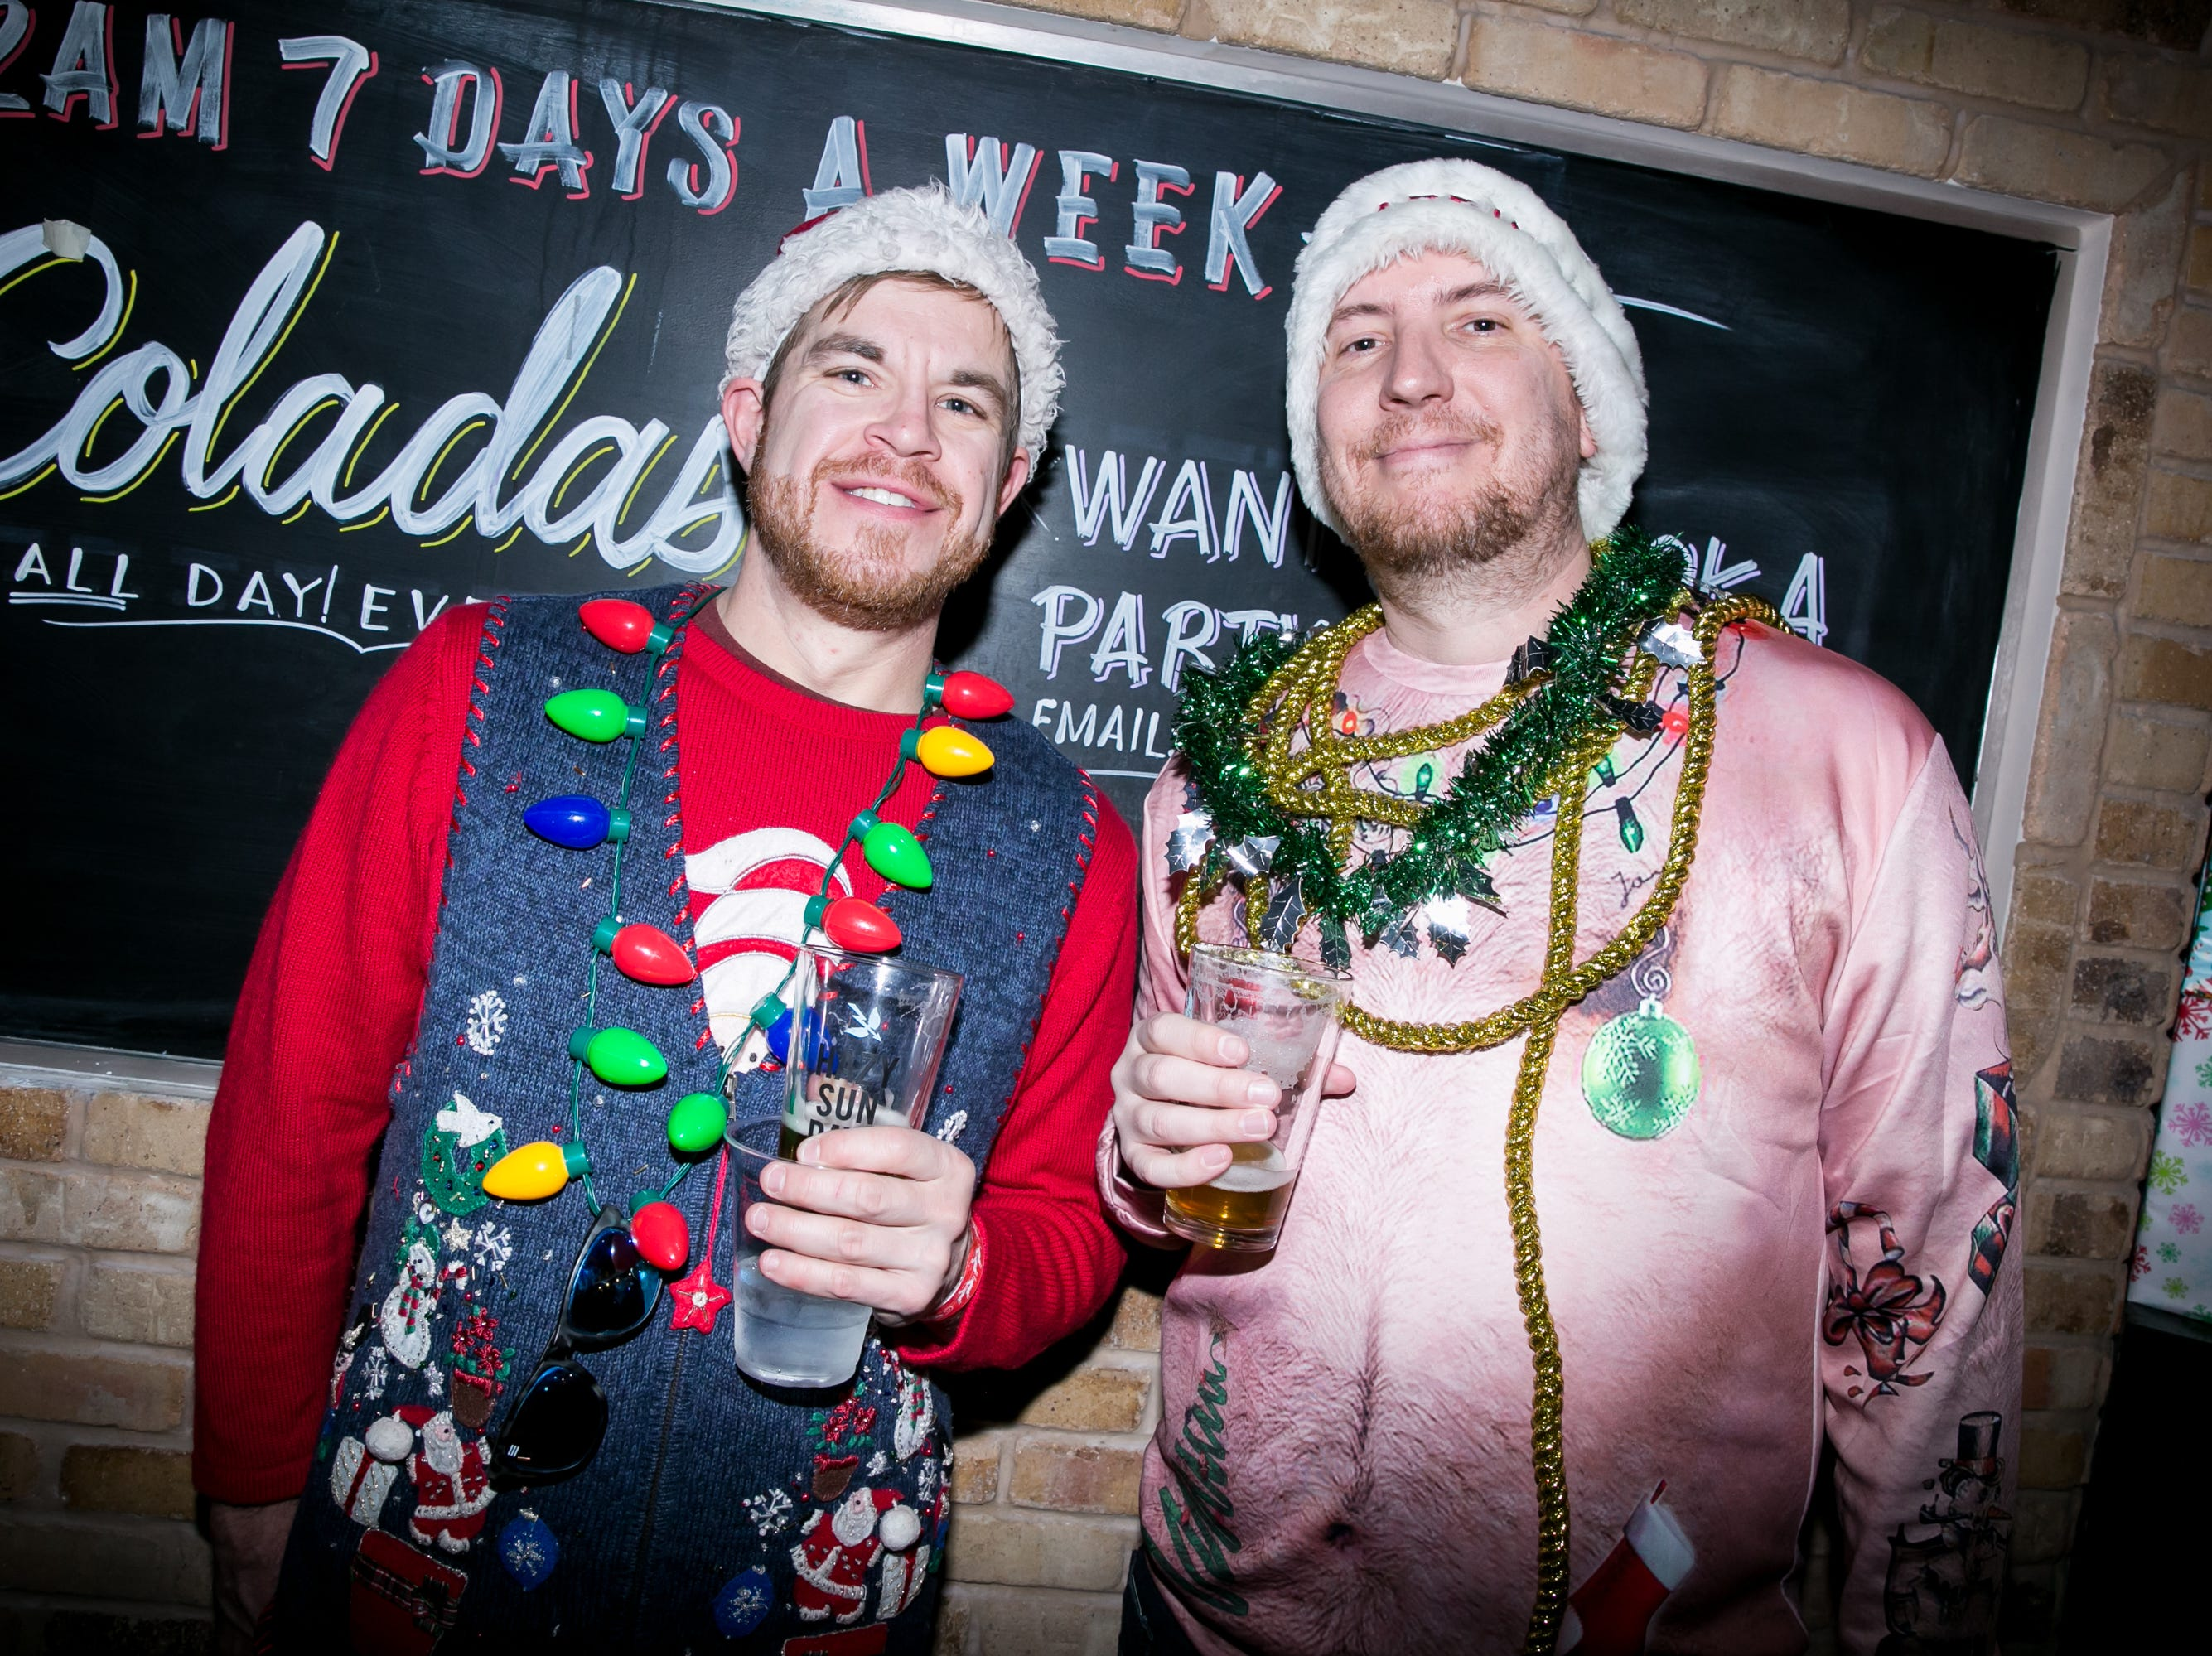 His hairy belly shirt was hilarious during the Scottsdale Santa Crawl at Old Town Gringos on Saturday, December 8, 2018.